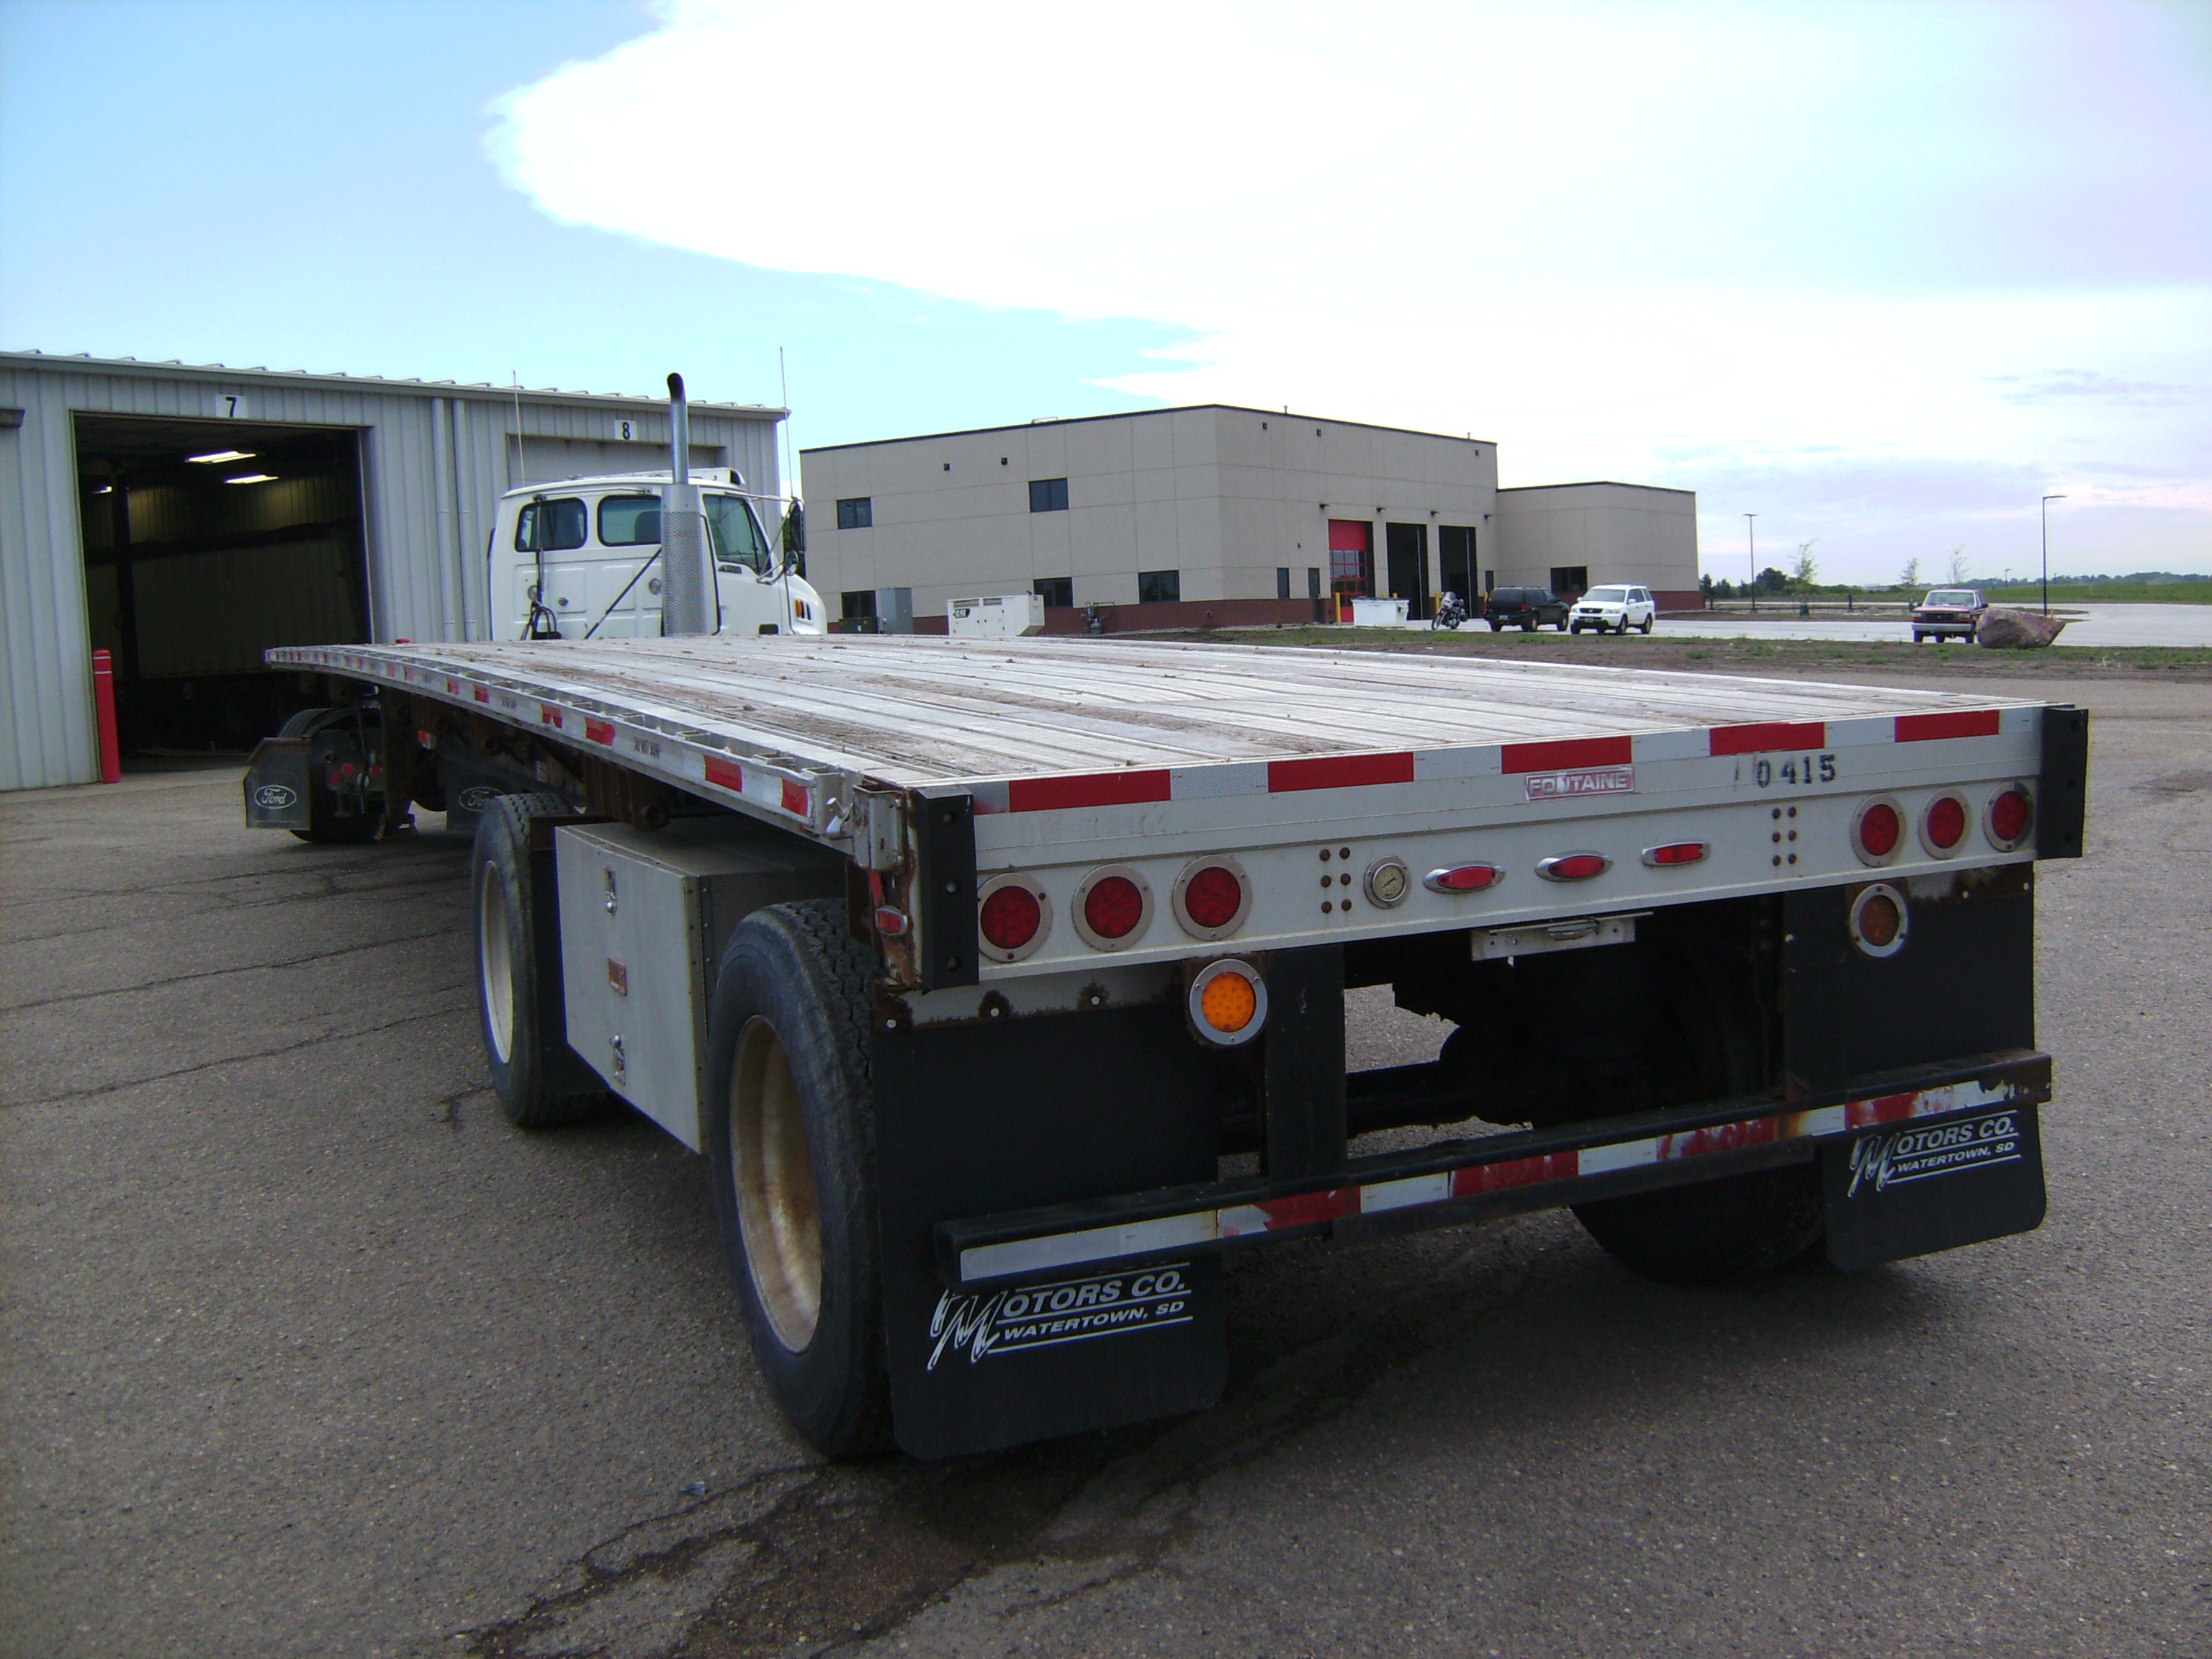 http://www.semitrailersalesandleasing.com/image/cache/2007_Fontaine_48x102_flatbed_540415_006.JPG Image